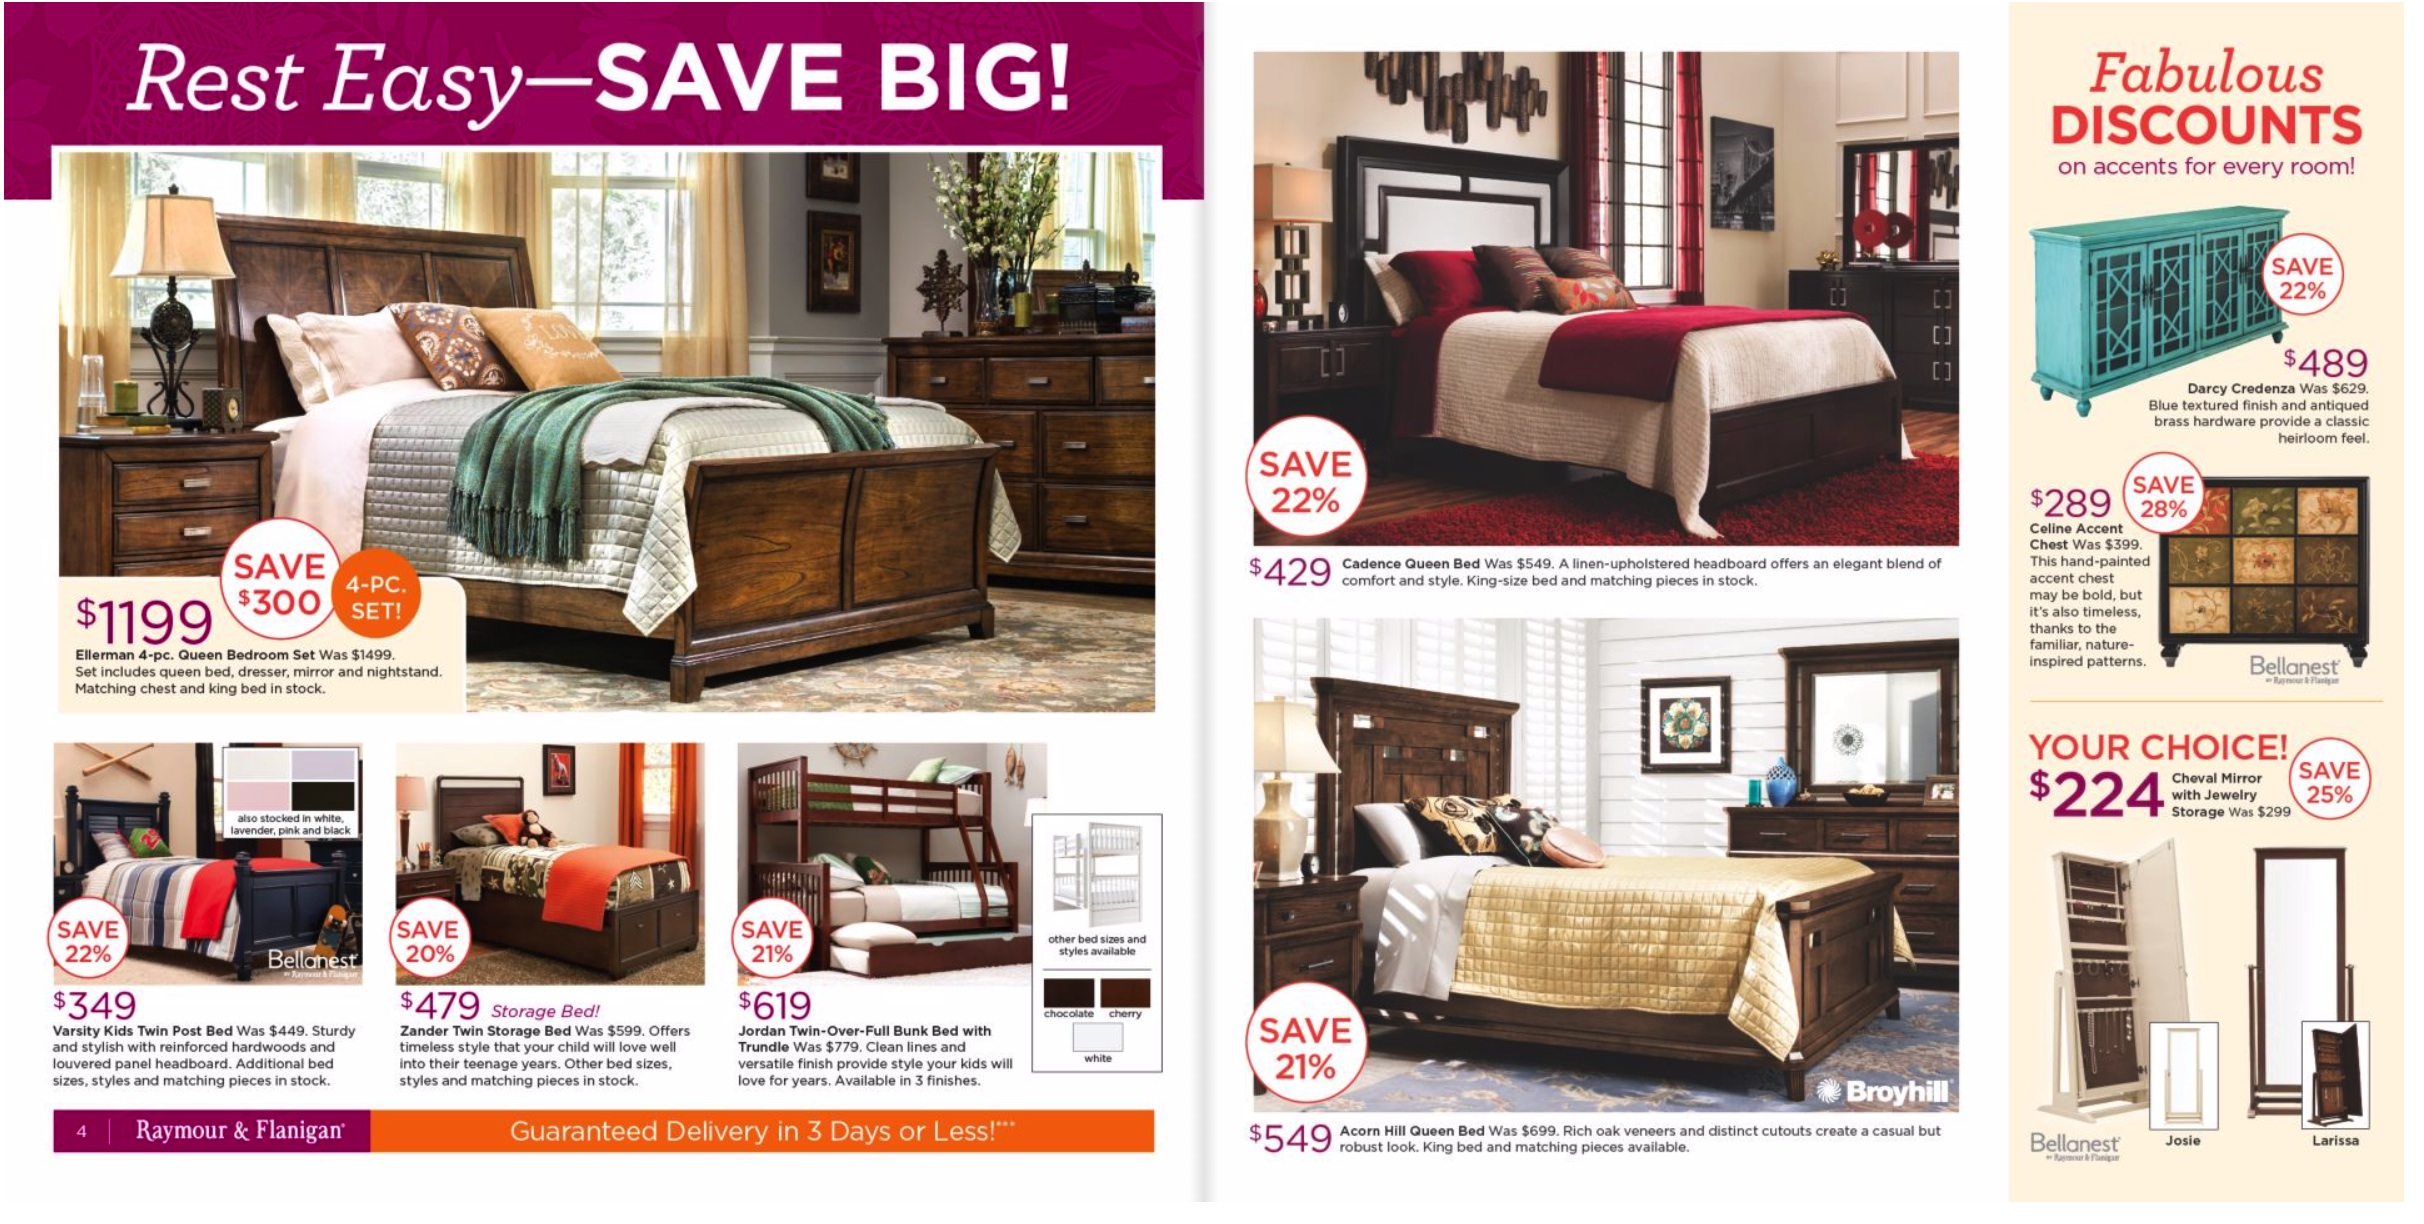 raymour and flanigan black friday 2019 ad for furniture deals funtober. Black Bedroom Furniture Sets. Home Design Ideas